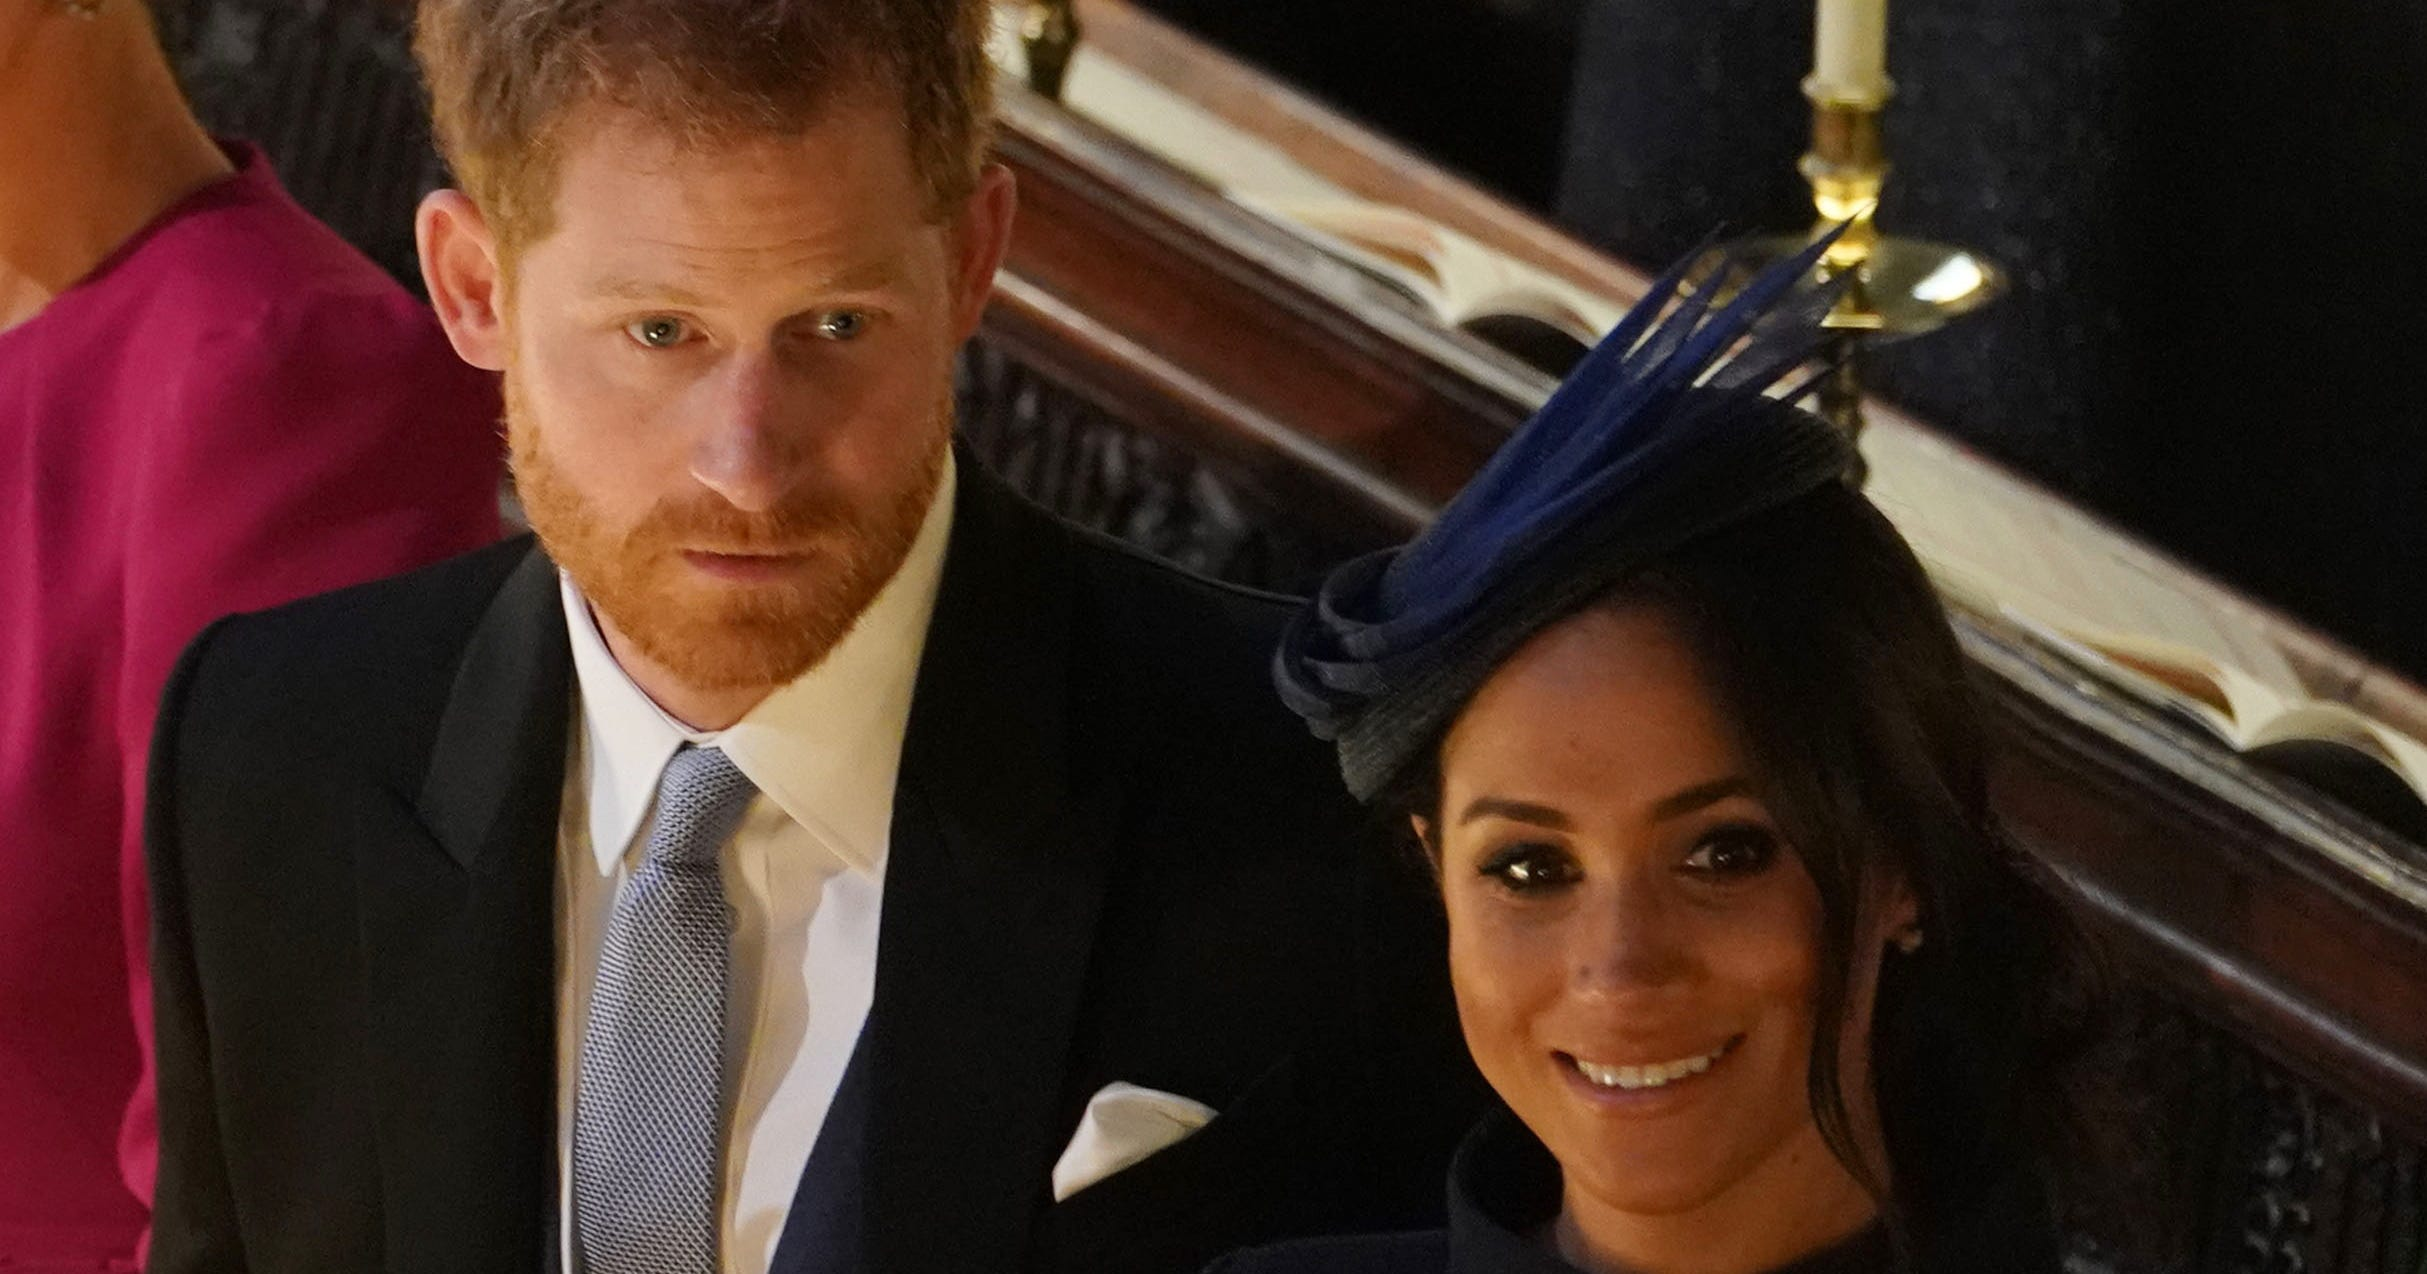 This Intimate Photo Proves Meghan & Harry Are Still In The Honeymoon Phase